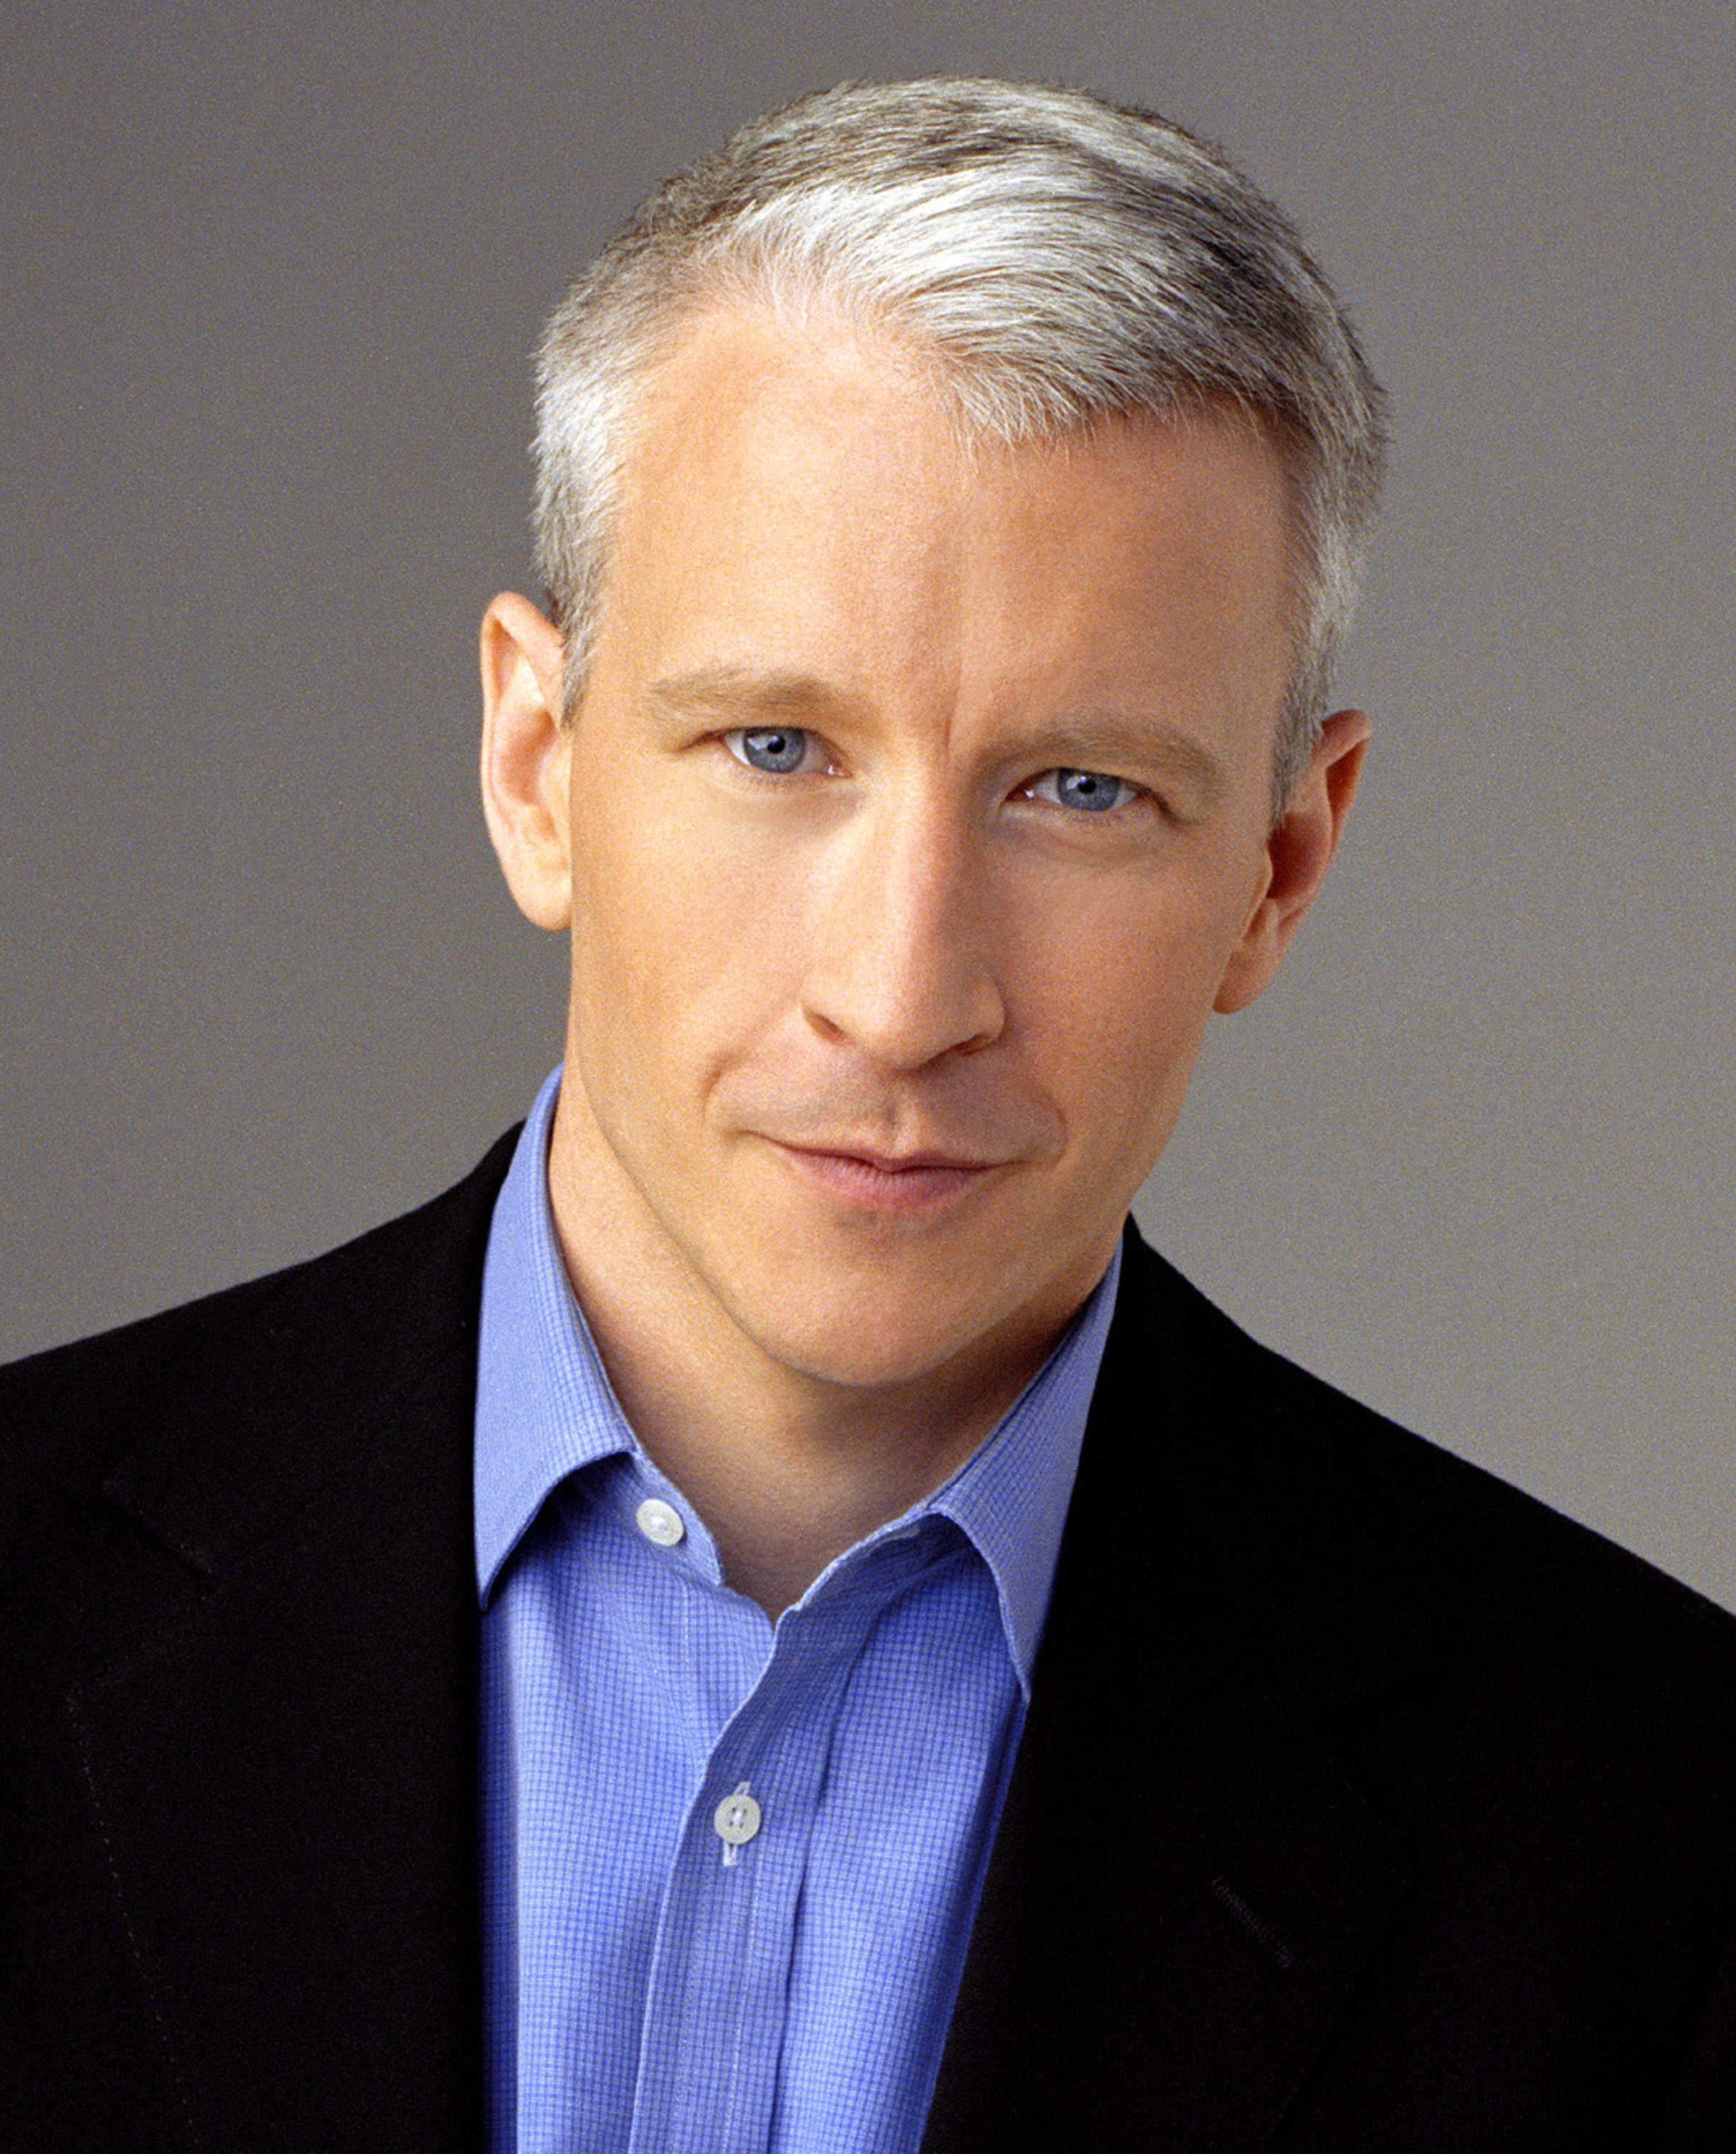 anderson cooper contact